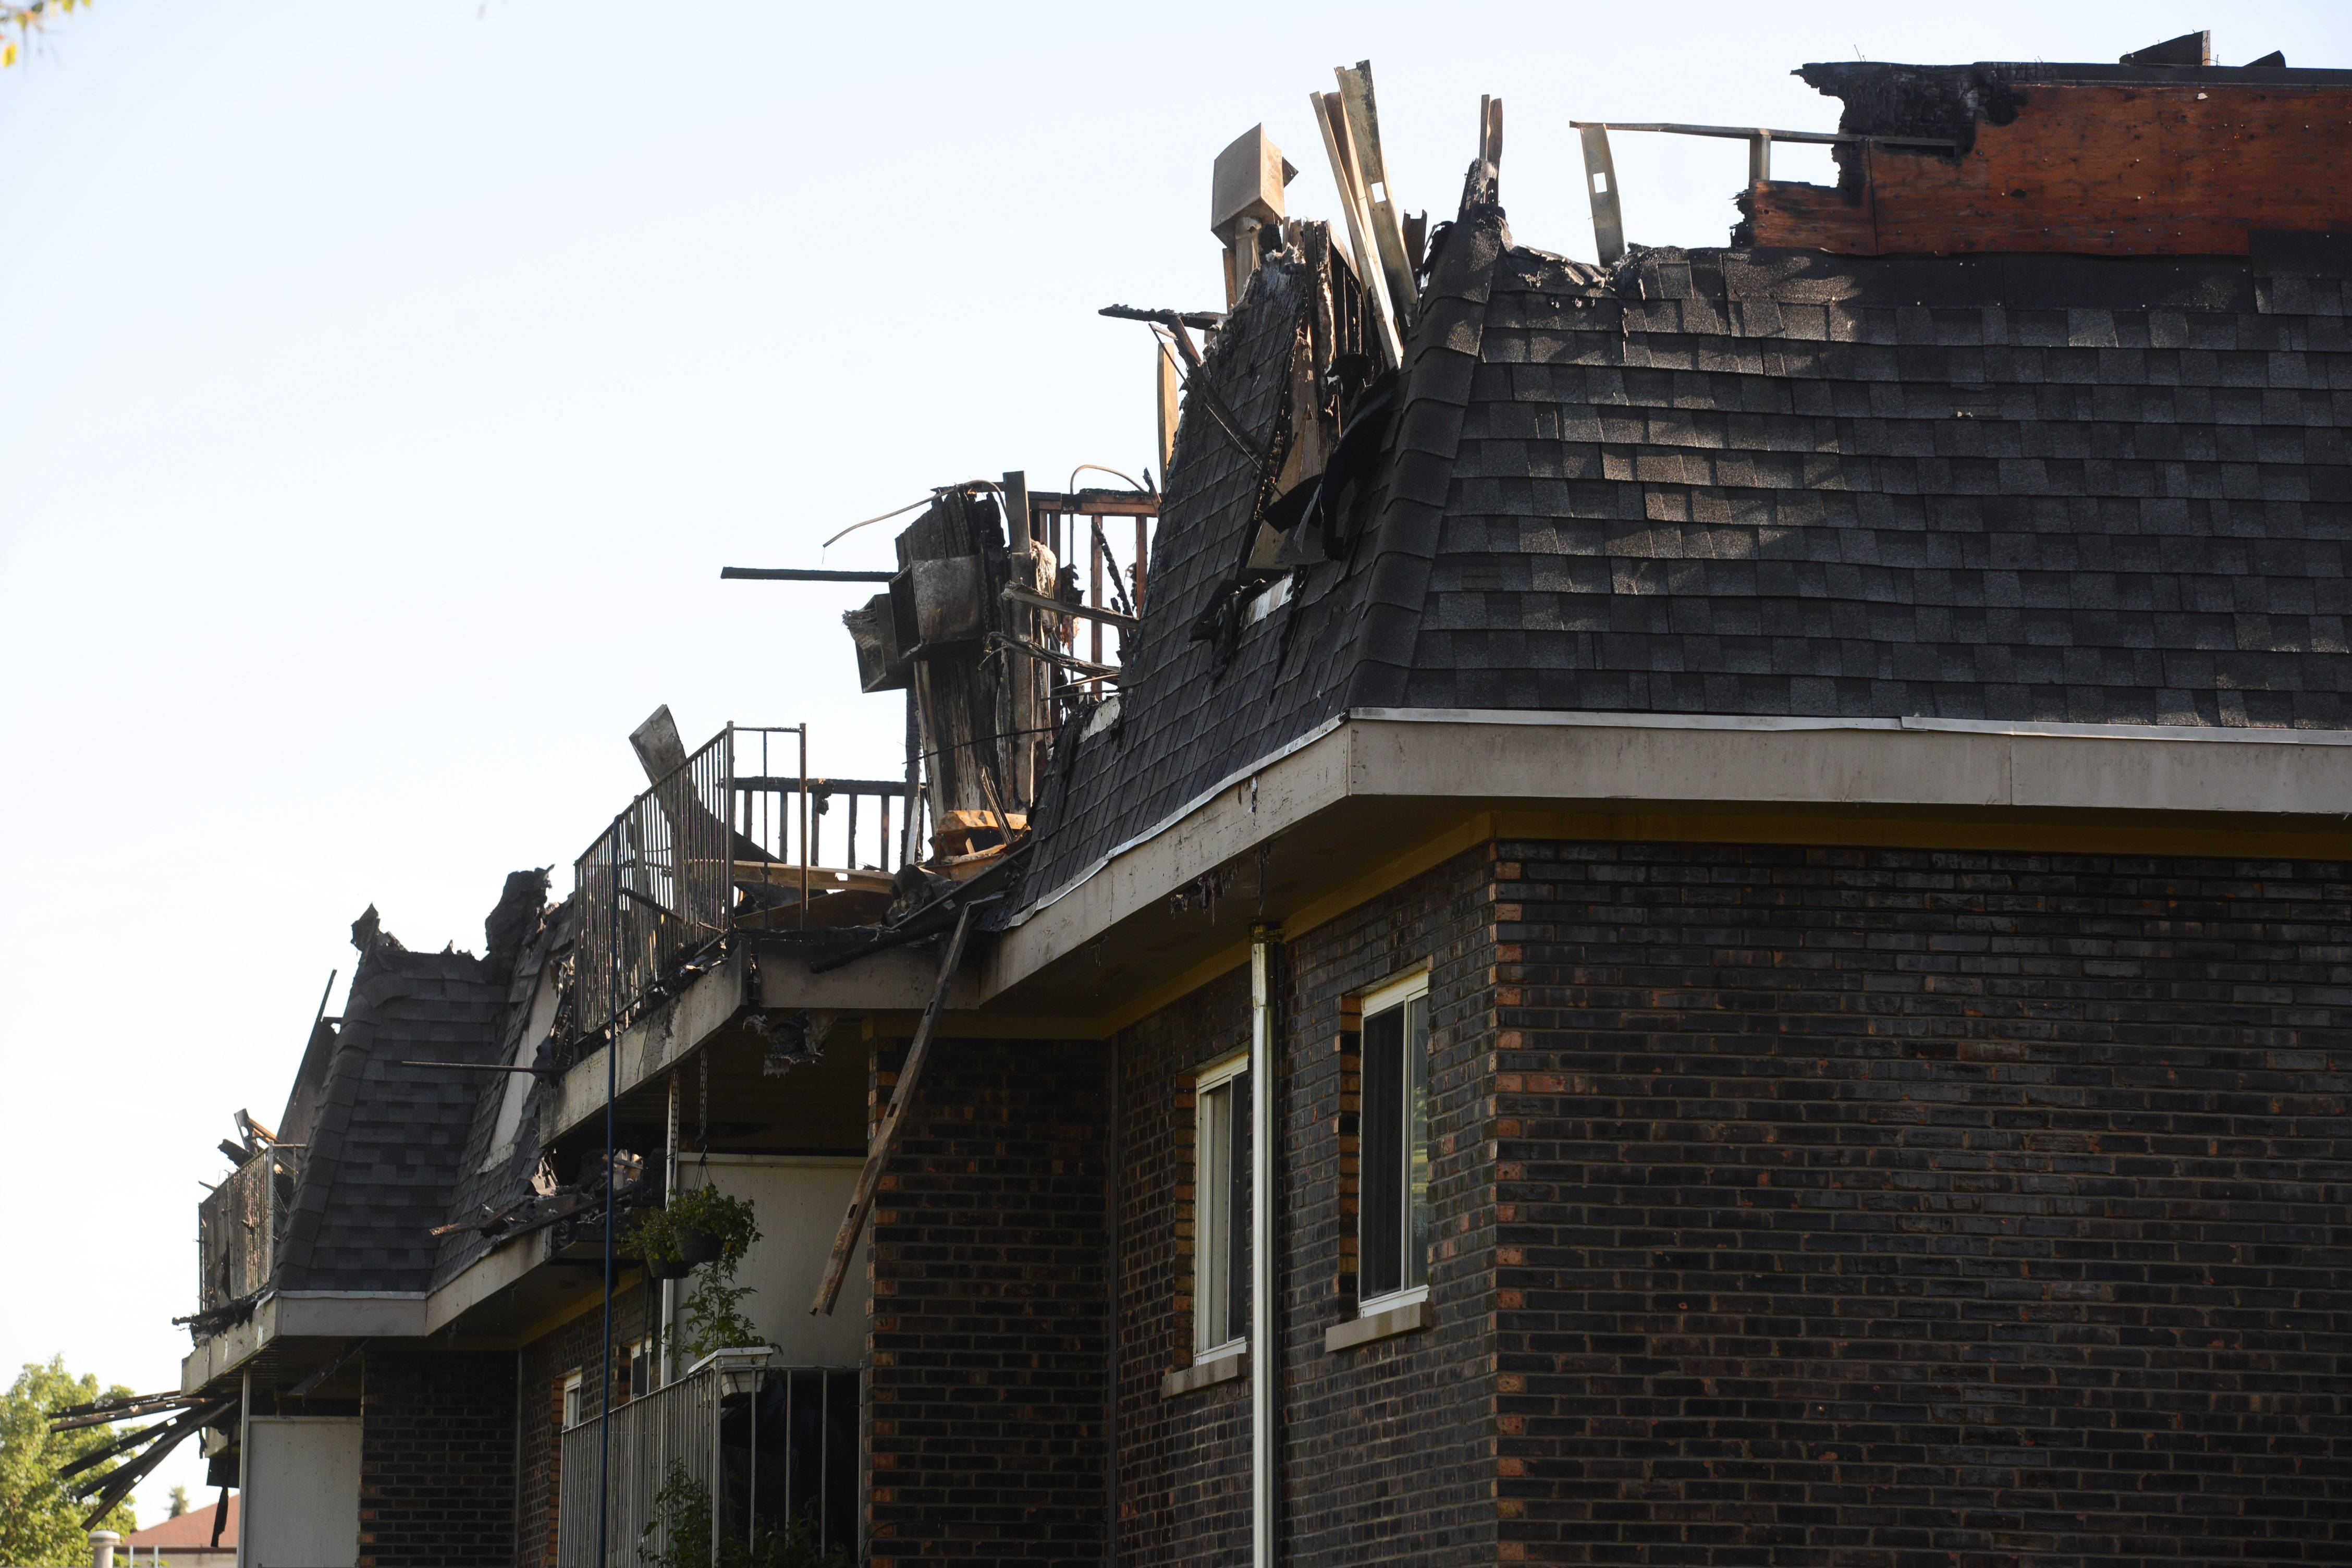 Residents of the River Trails condominiums in Prospect Heights returned Thursday morning to see homes left in ruins by Wednesday's massive fire. Police say the cause of the blaze appears accidental.